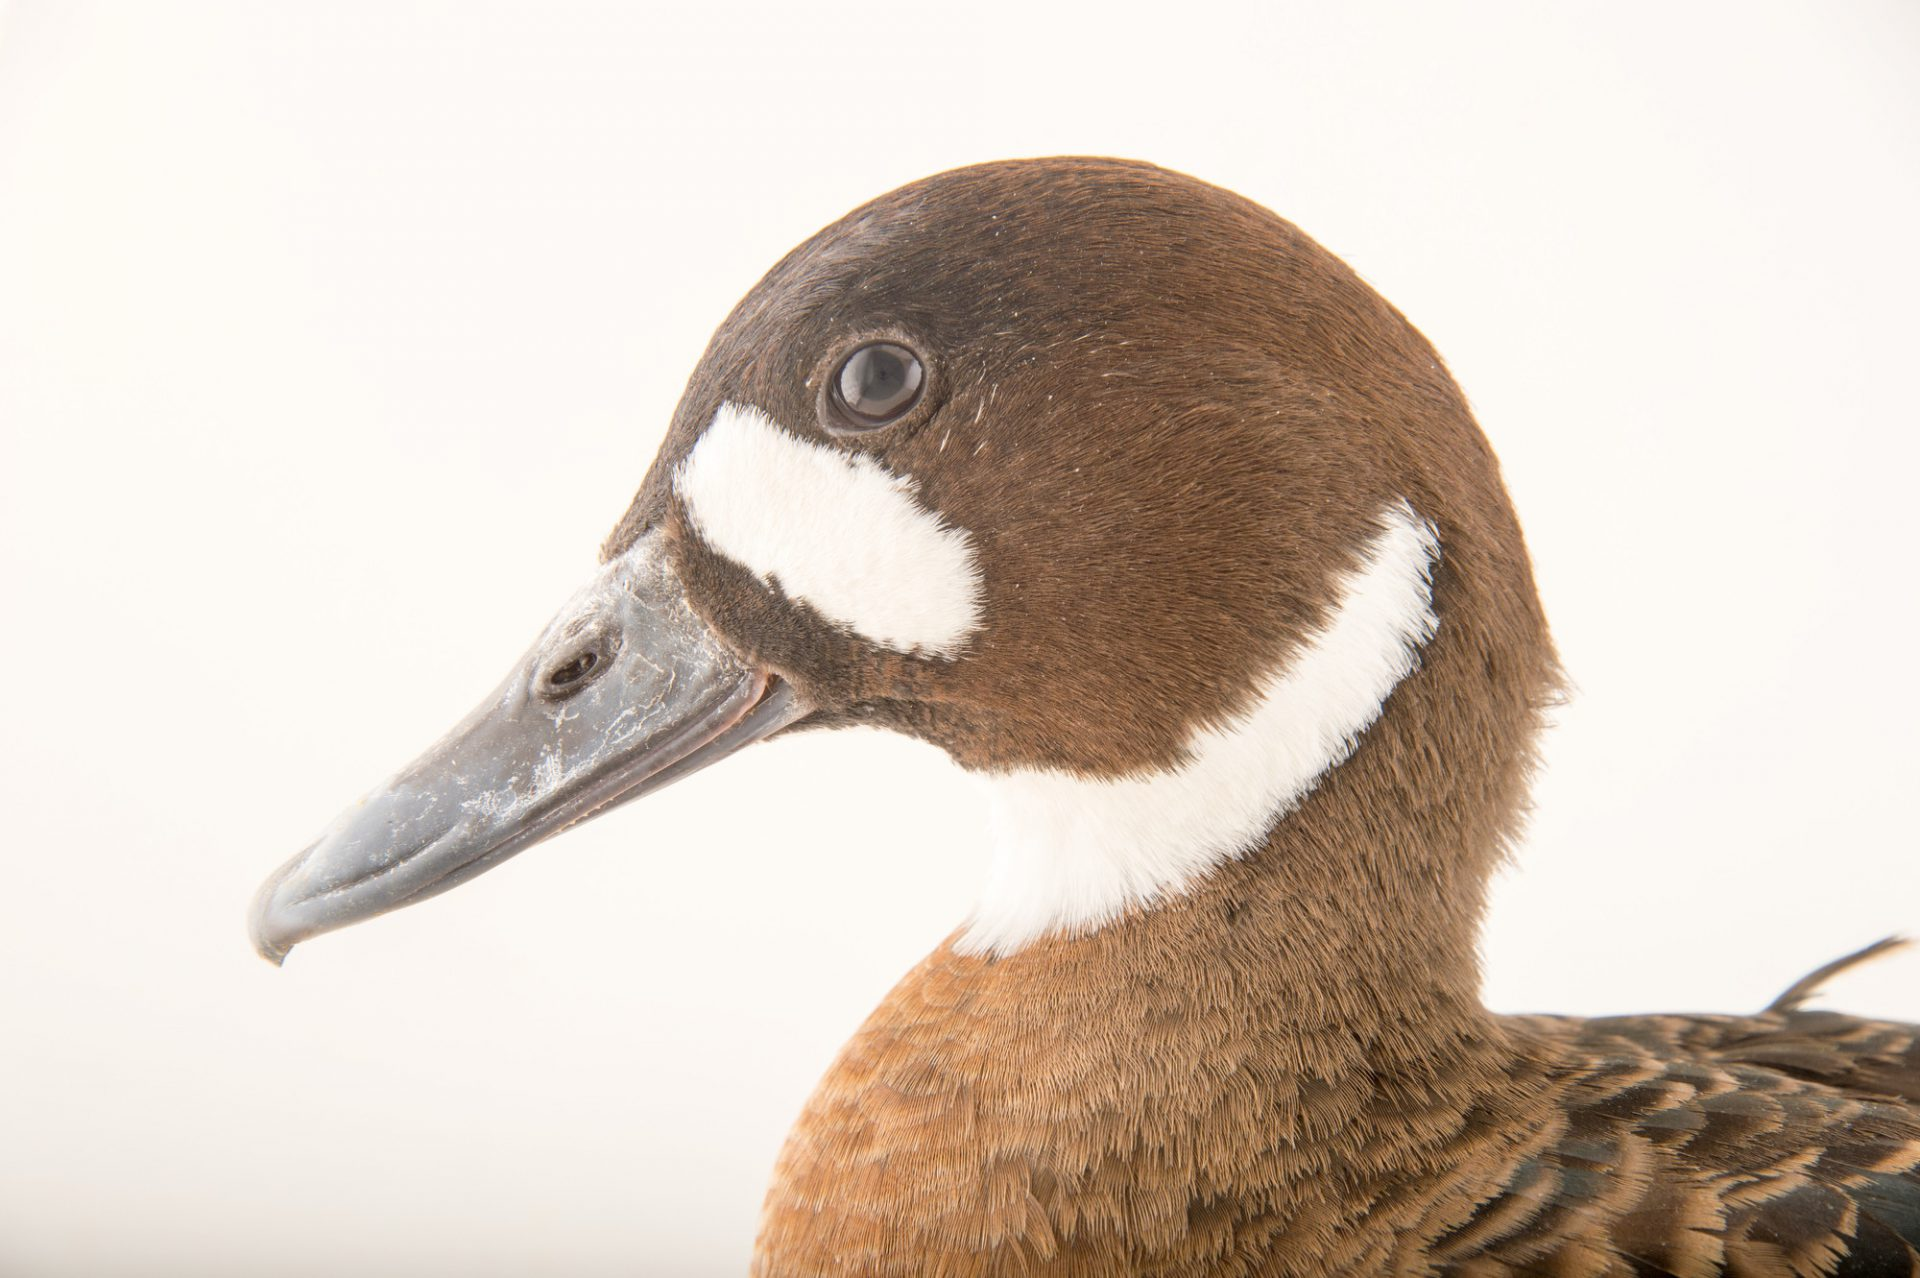 Picture of a spectacled duck (Speculanas specularis) at the Sylvan Heights Bird Park.